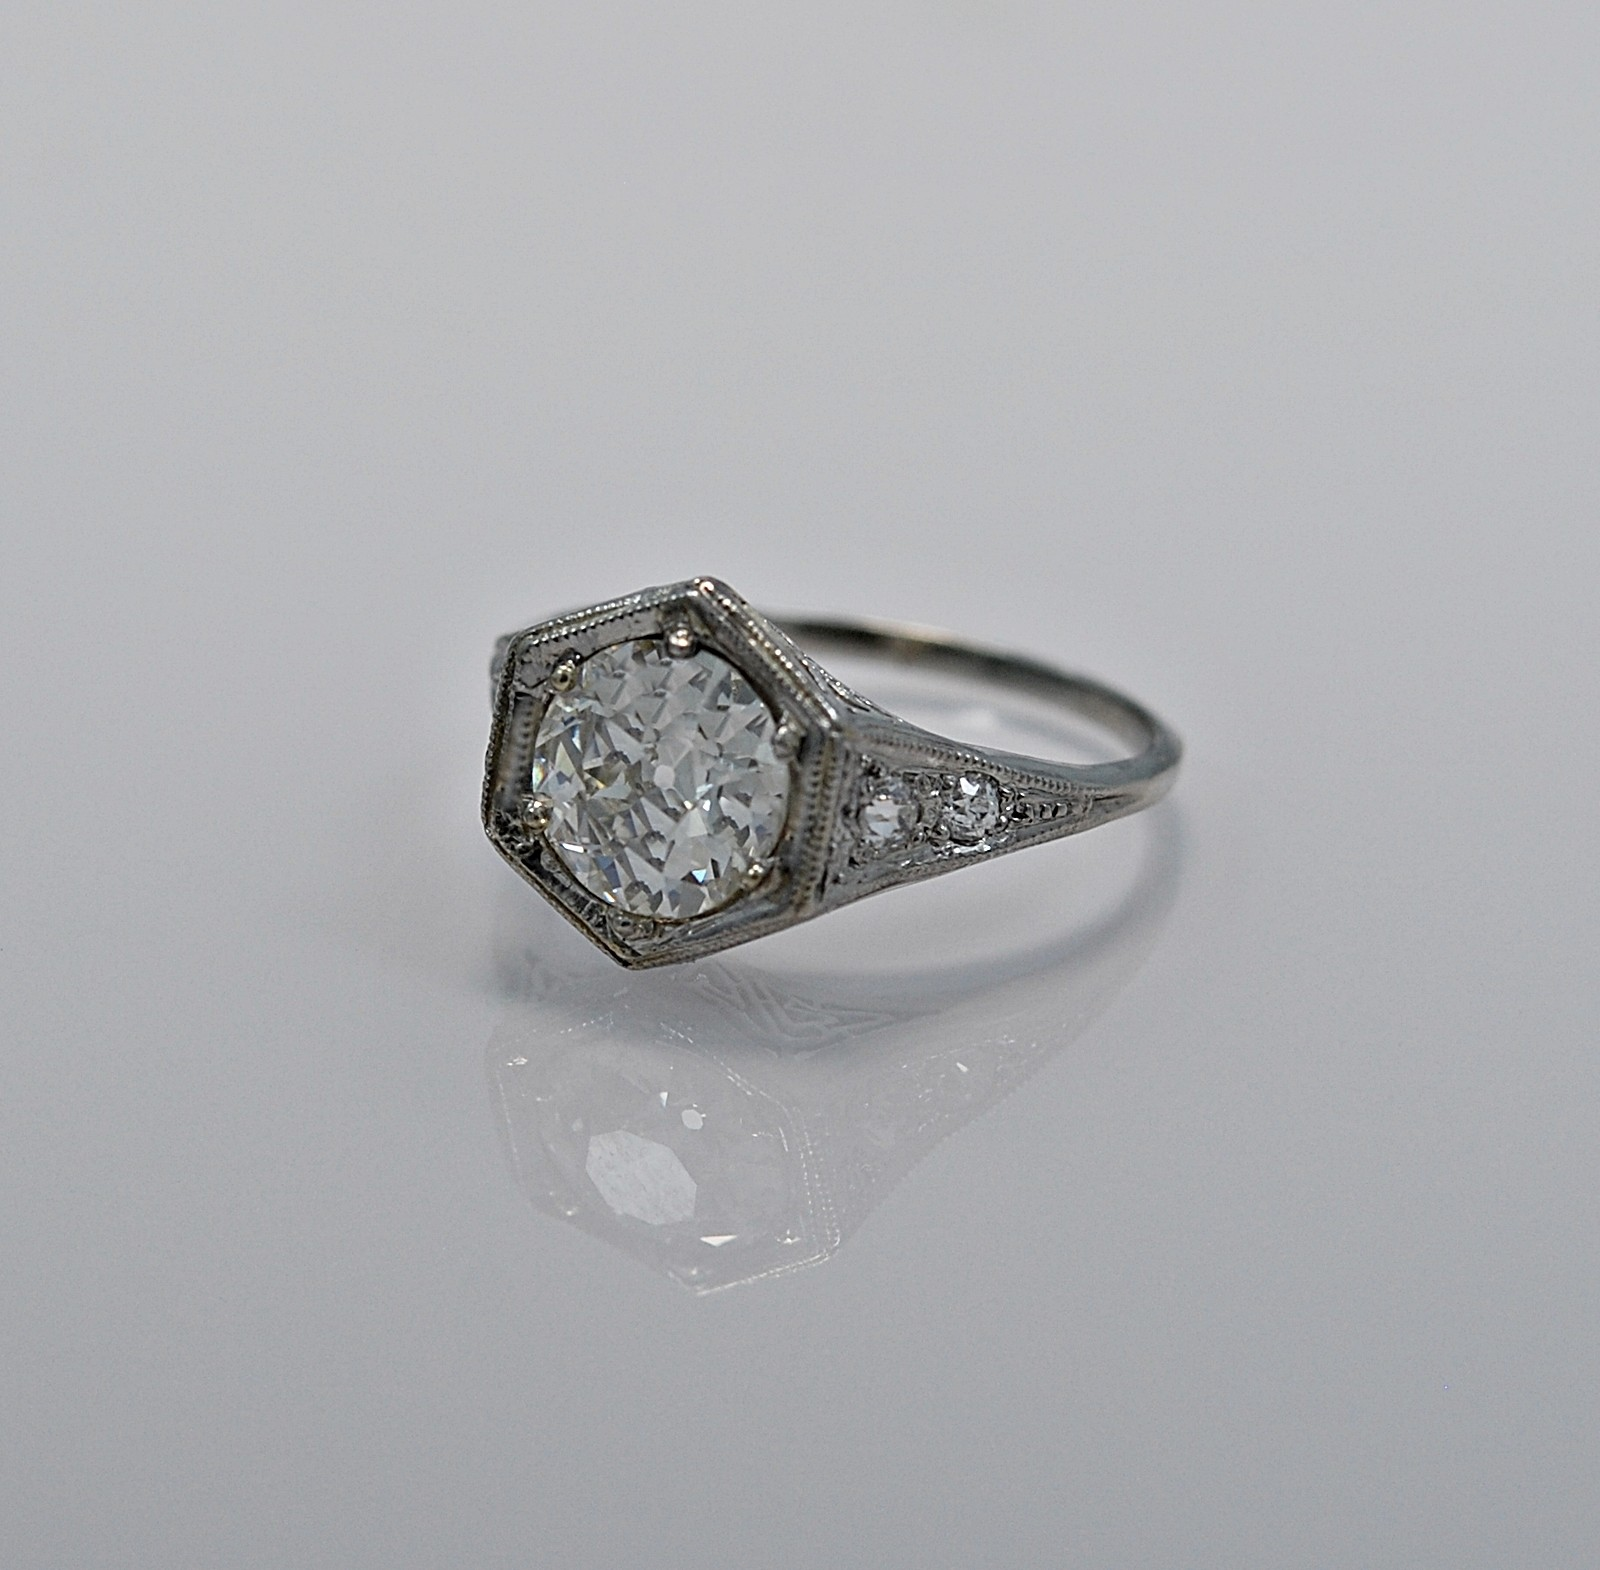 123ct-diamond-platinum-edwardian-engagement-ring-head